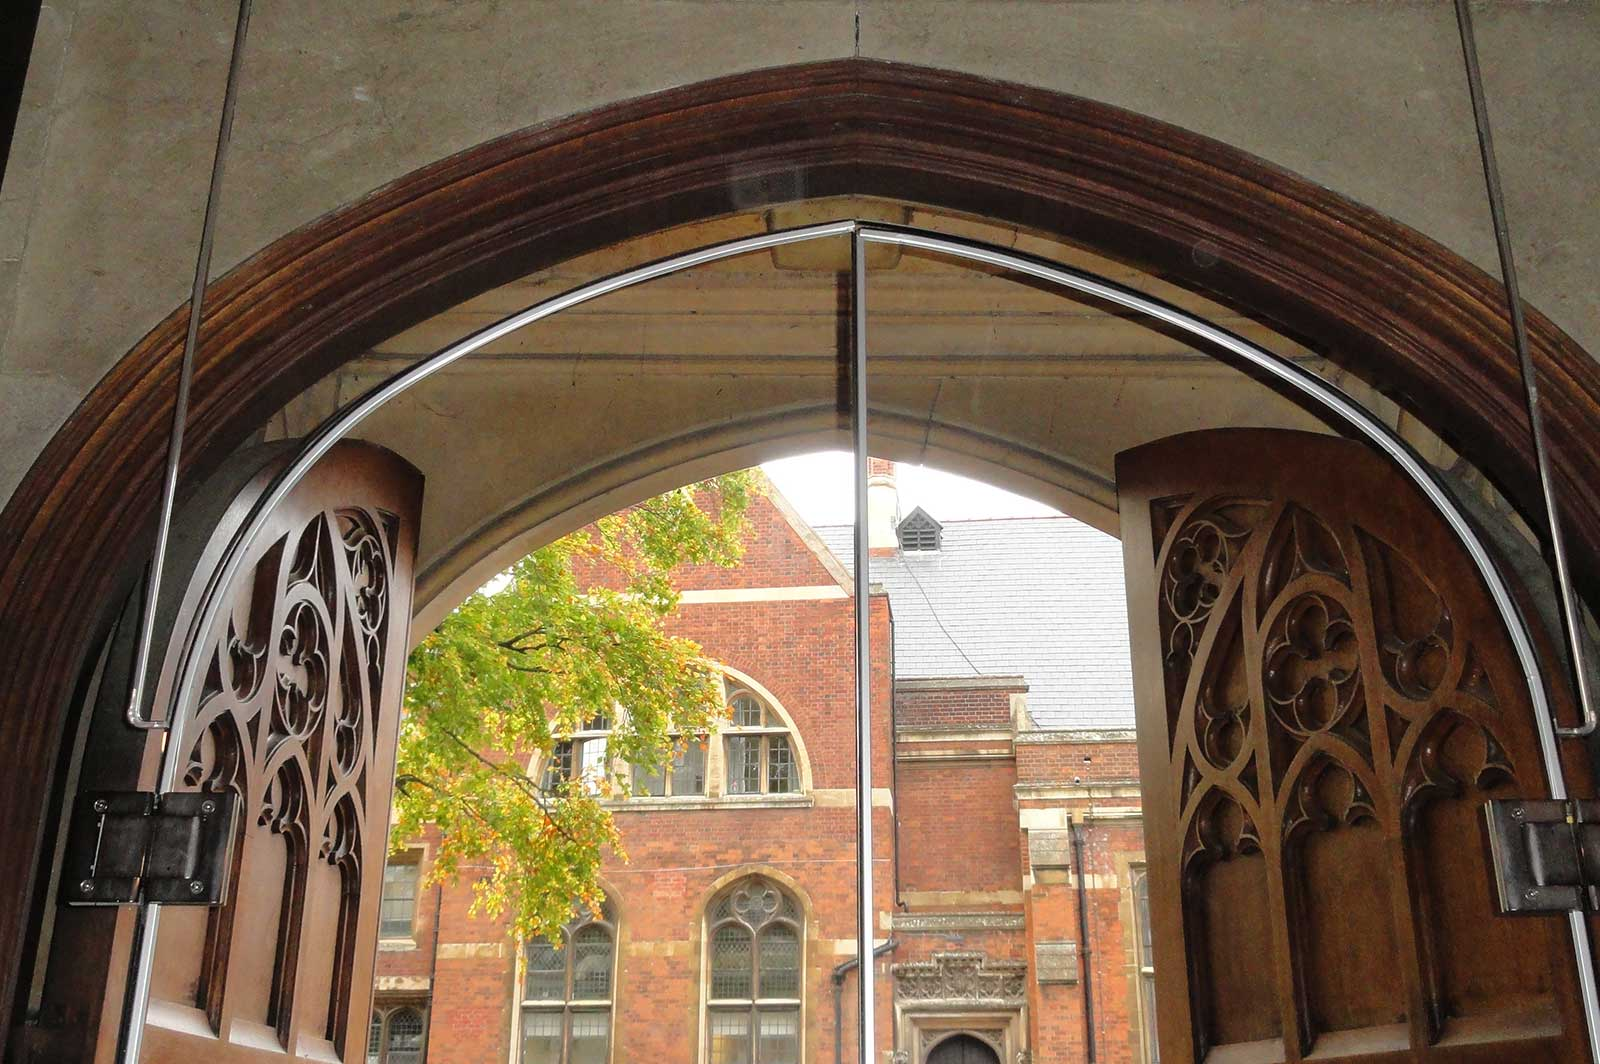 Arched Glass Entrance Doors, The Leys School Cambridge